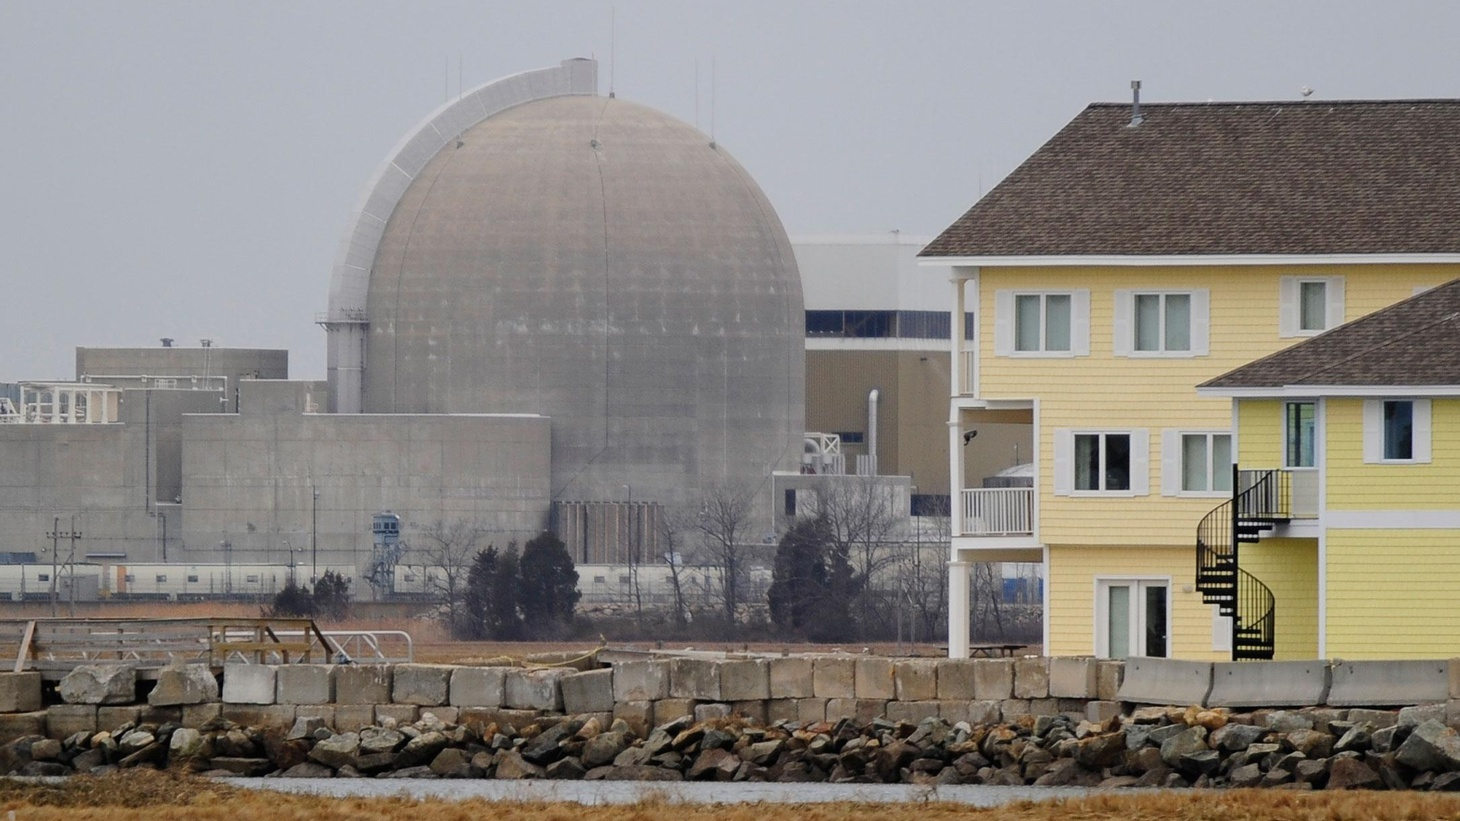 Accidents at nuclear power plants may be extremely rare, but when they occur they're devastating. Are US regulators doing enough to prevent a Fukushima-type incident here?